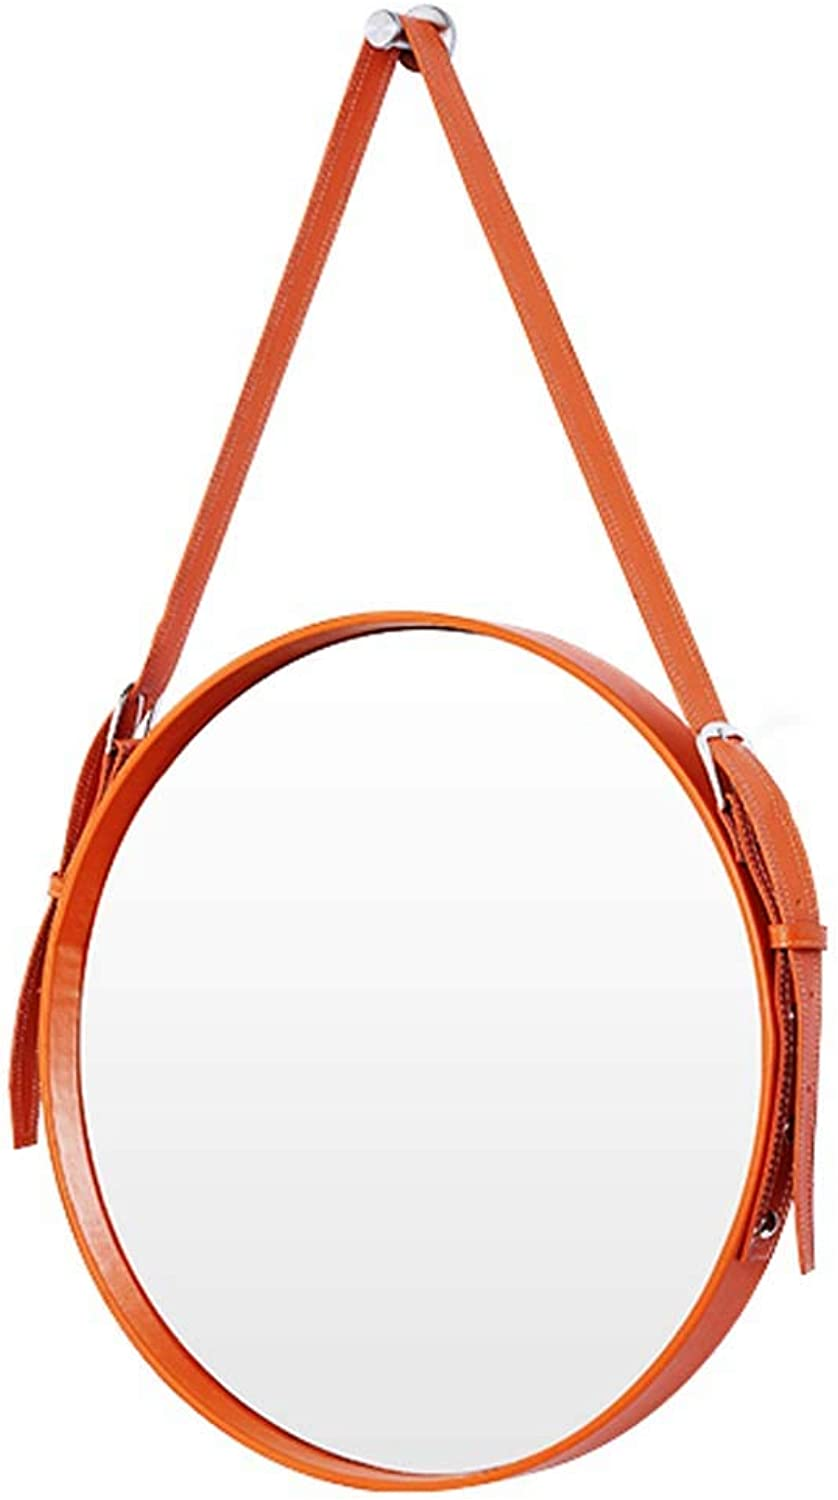 Makeup Mirrors Leather Round Wall Mirror Decorative Mirror with Hanging Strap Silver Hardware Hook(orange Yellow,Diameter 20-28Inch)